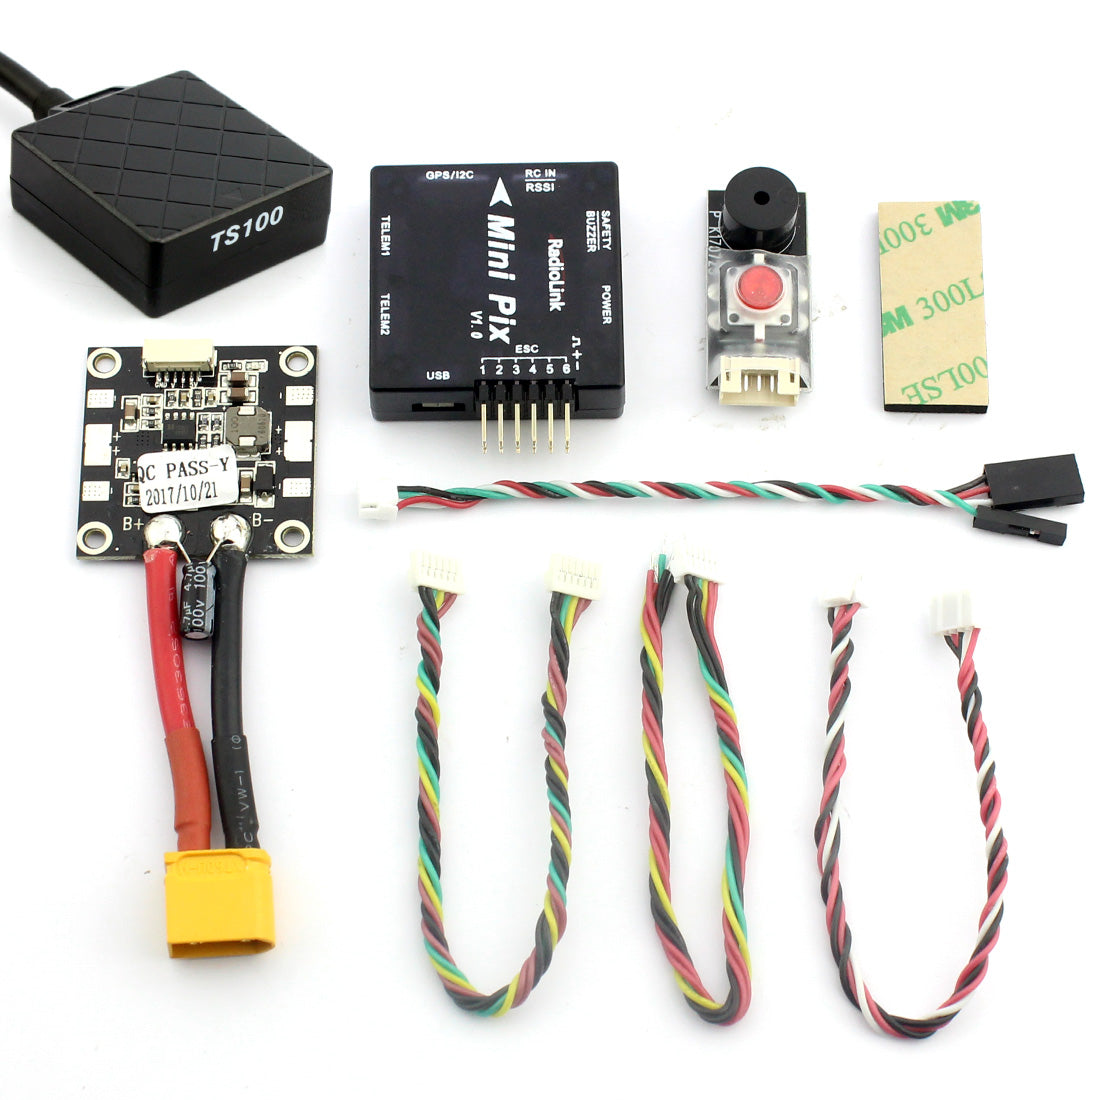 Costbuys  Mini PIX M8N GPS Flight Control Vibration Damping by Software Atitude Hold for RC Racer Drone Multicopter Quadcopter -